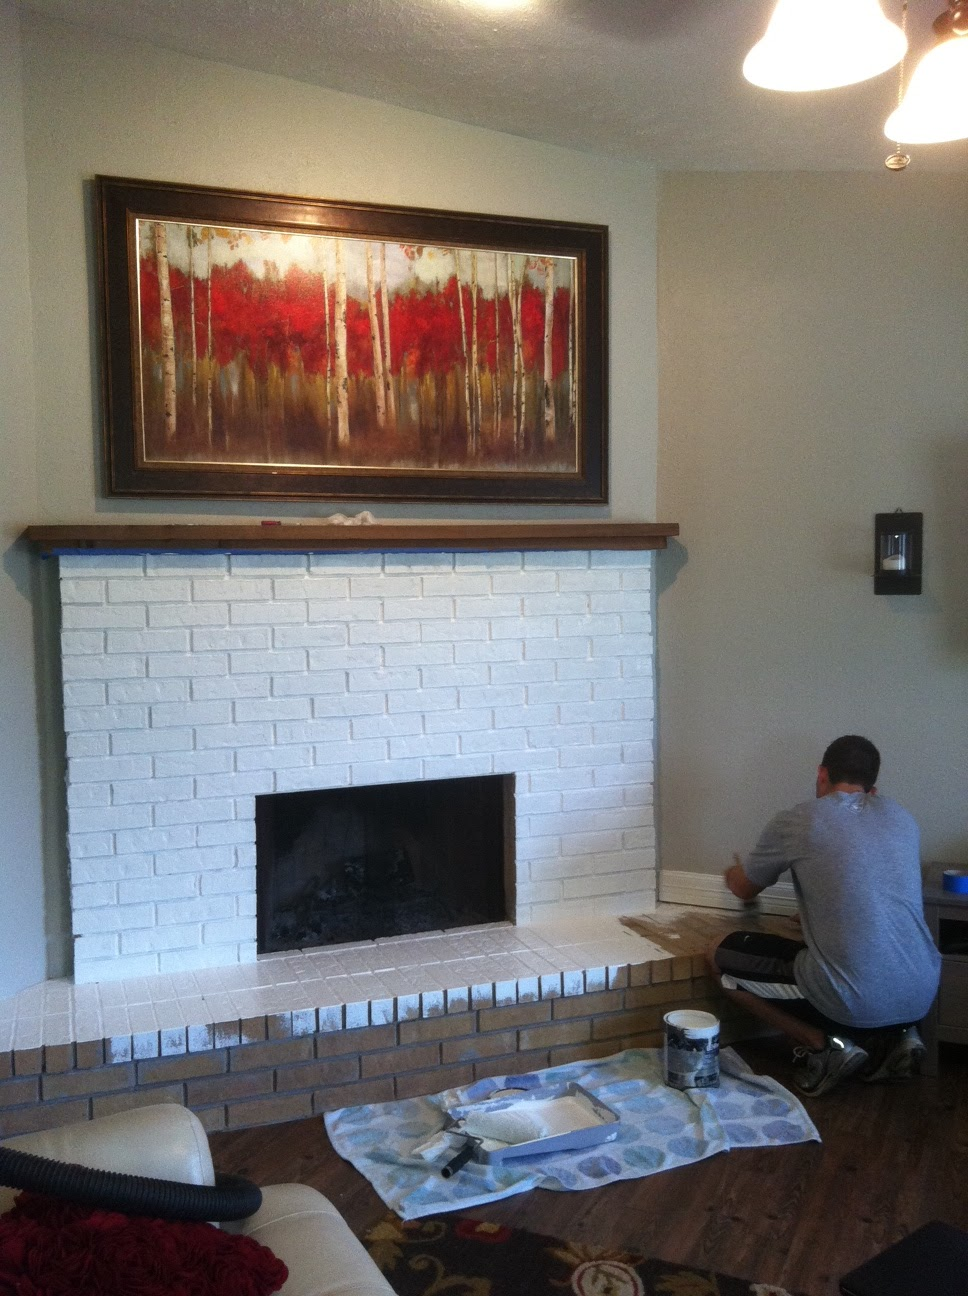 The Happy Homebodies: Weekend Project: Fireplace Facelift